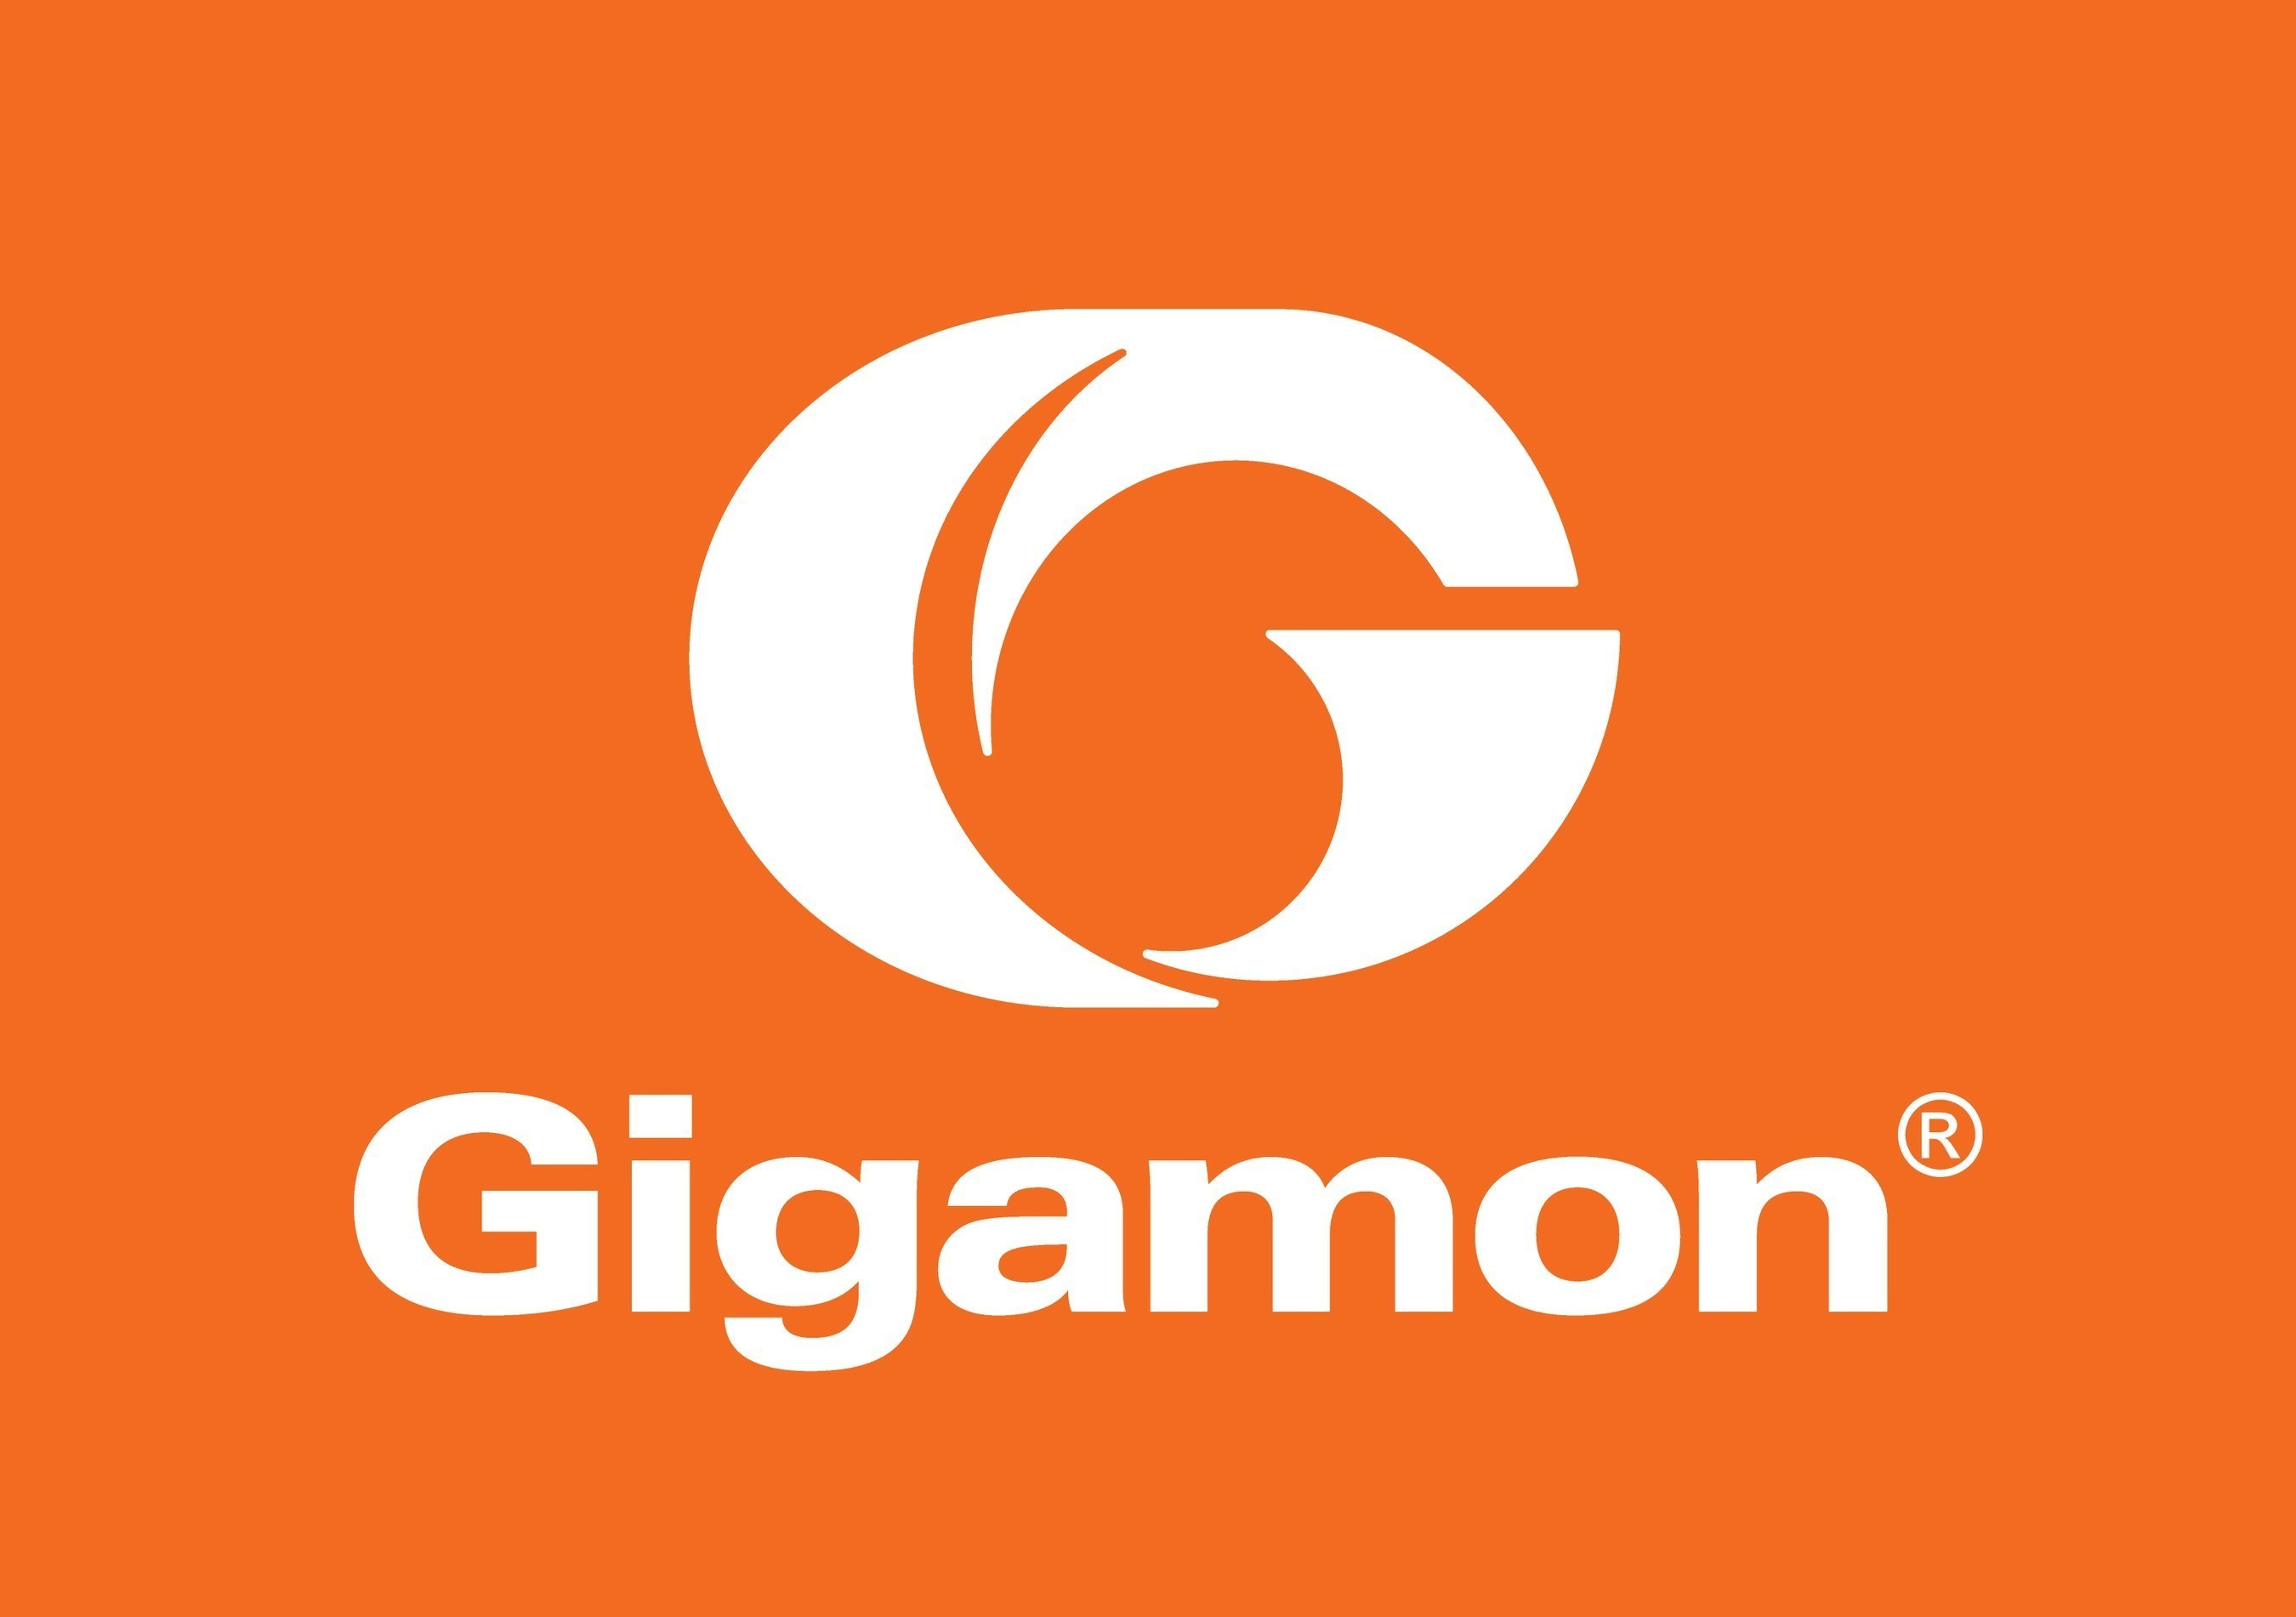 Gigamon Adds Multiple Security Vendors to its Ecosystem Partner Program